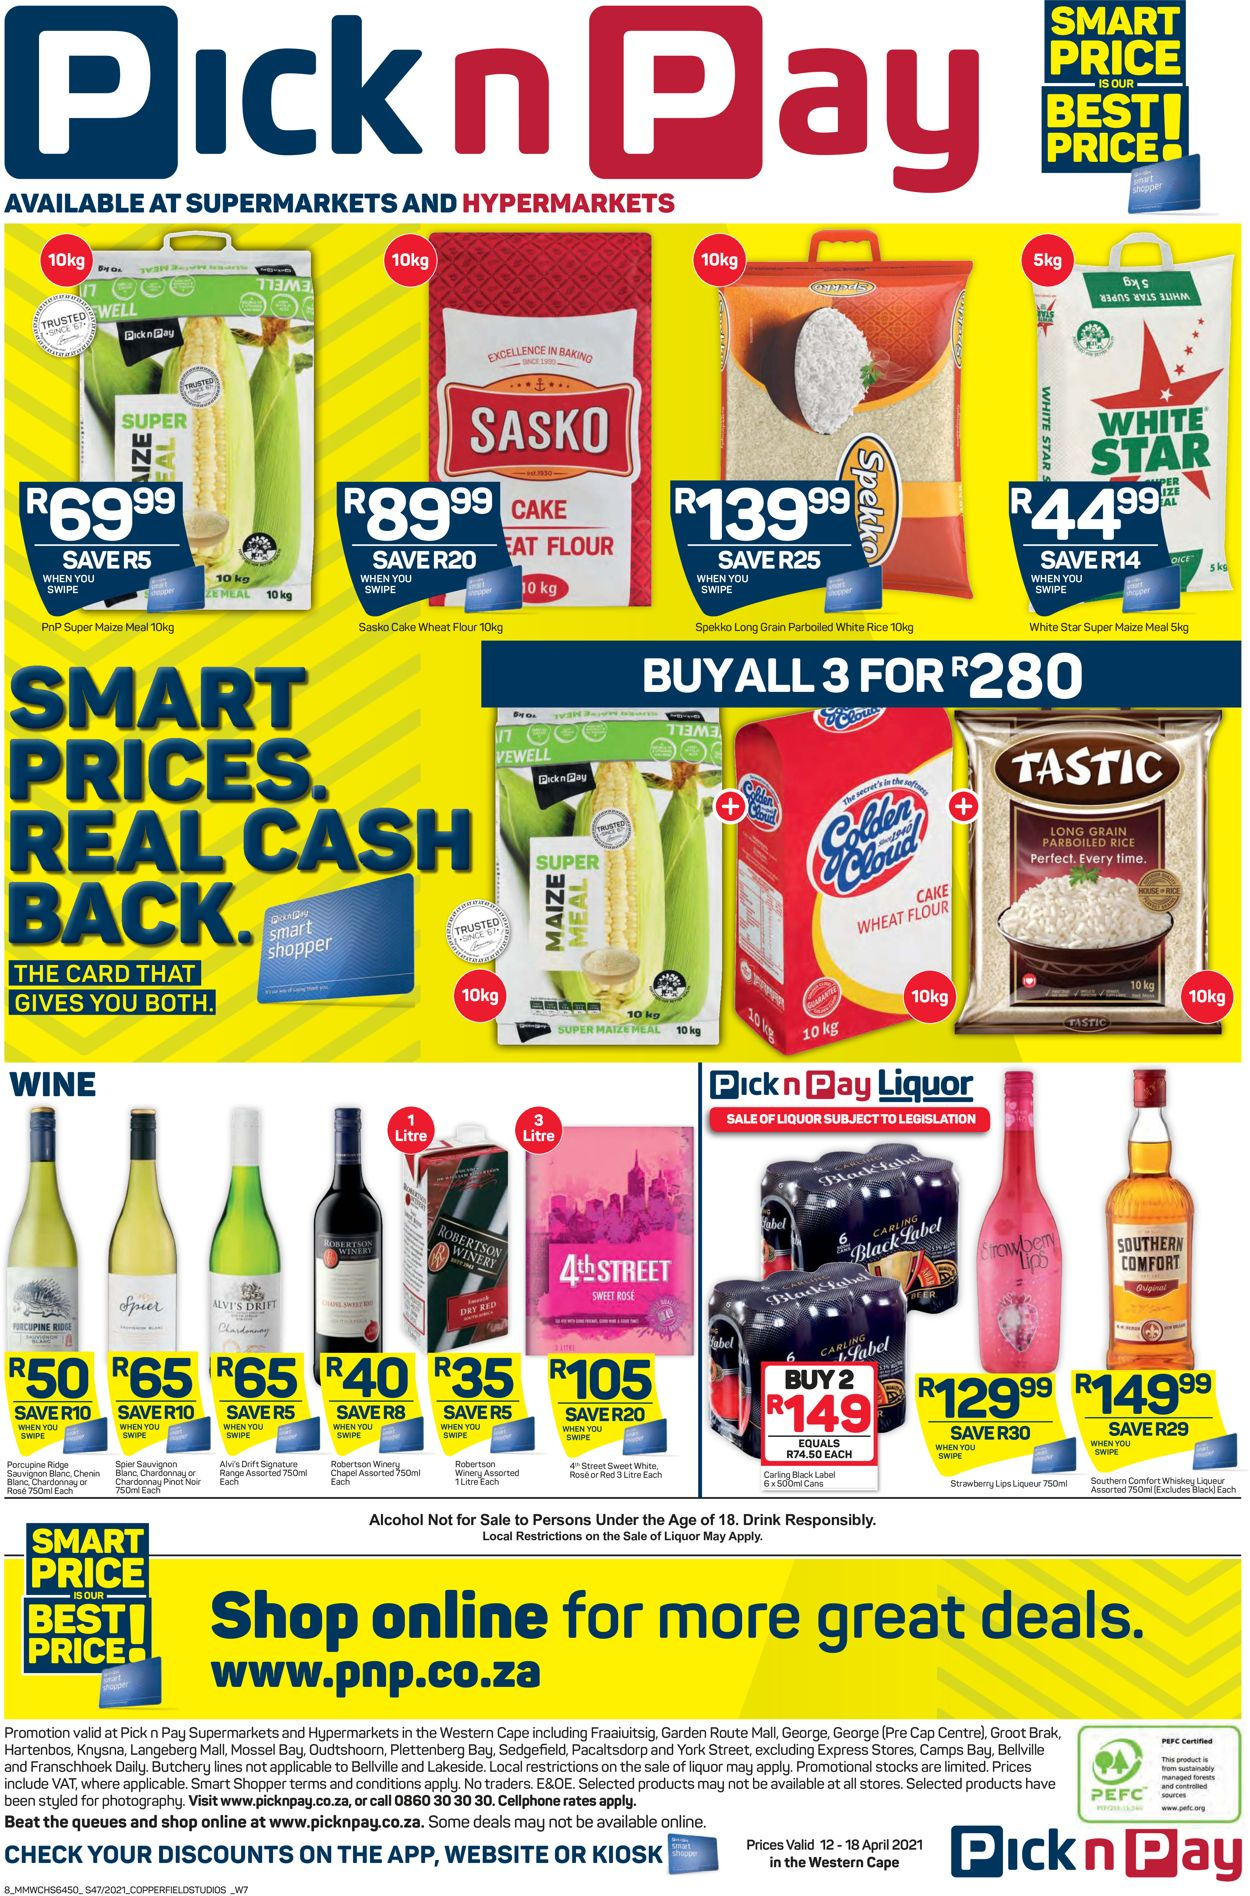 Pick n Pay Catalogue - 2021/04/12-2021/04/18 (Page 8)